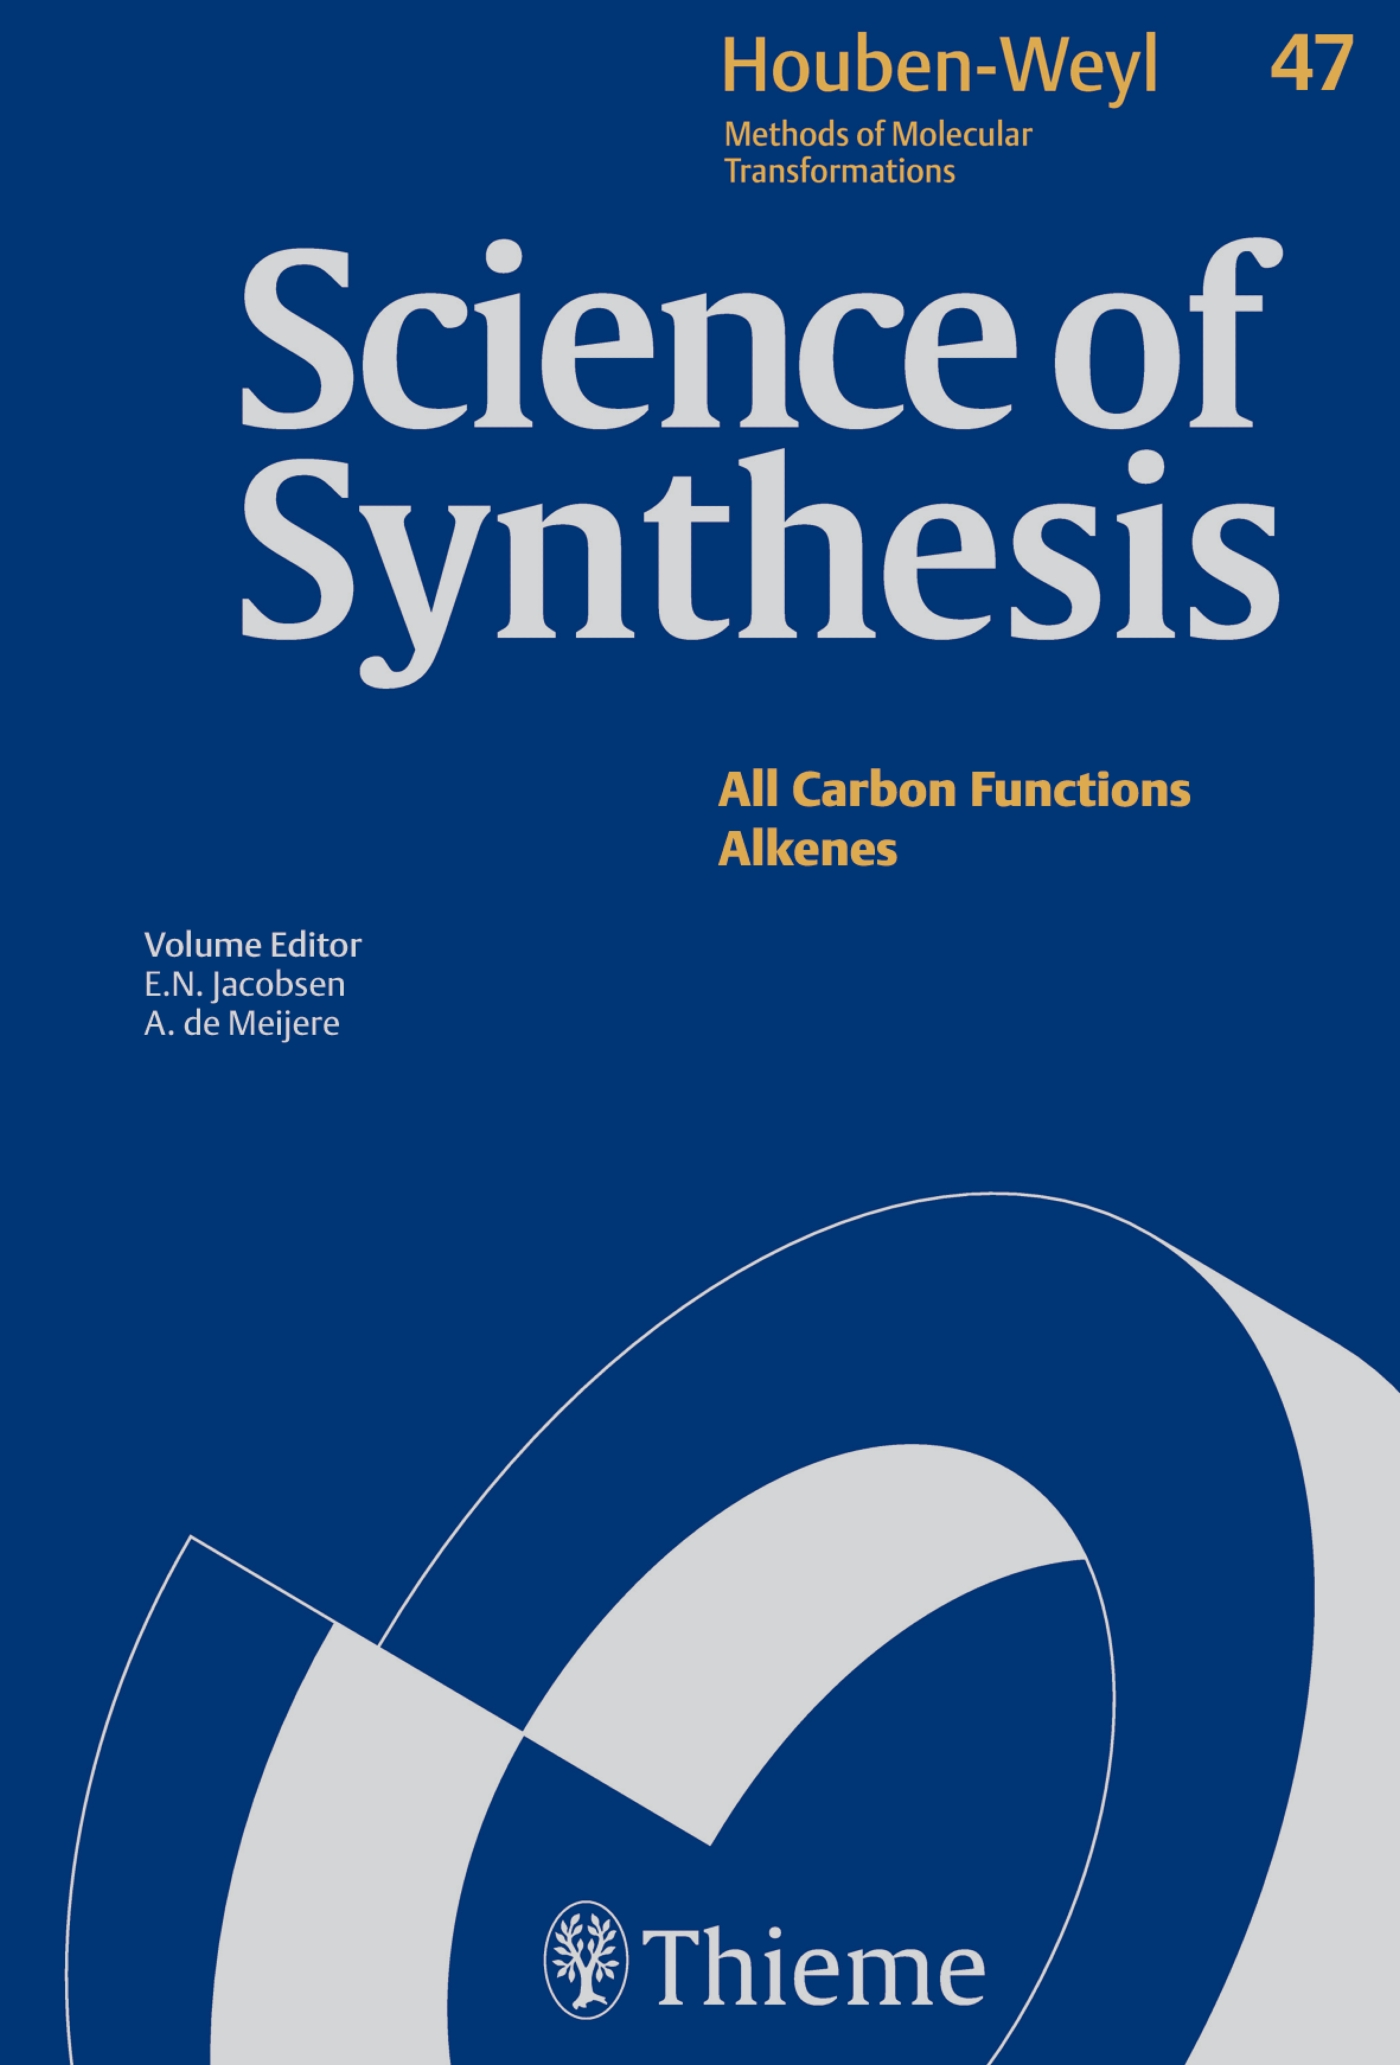 Science of Synthesis: Houben-Weyl Methods of Molecular Transformations  Vol. 47a